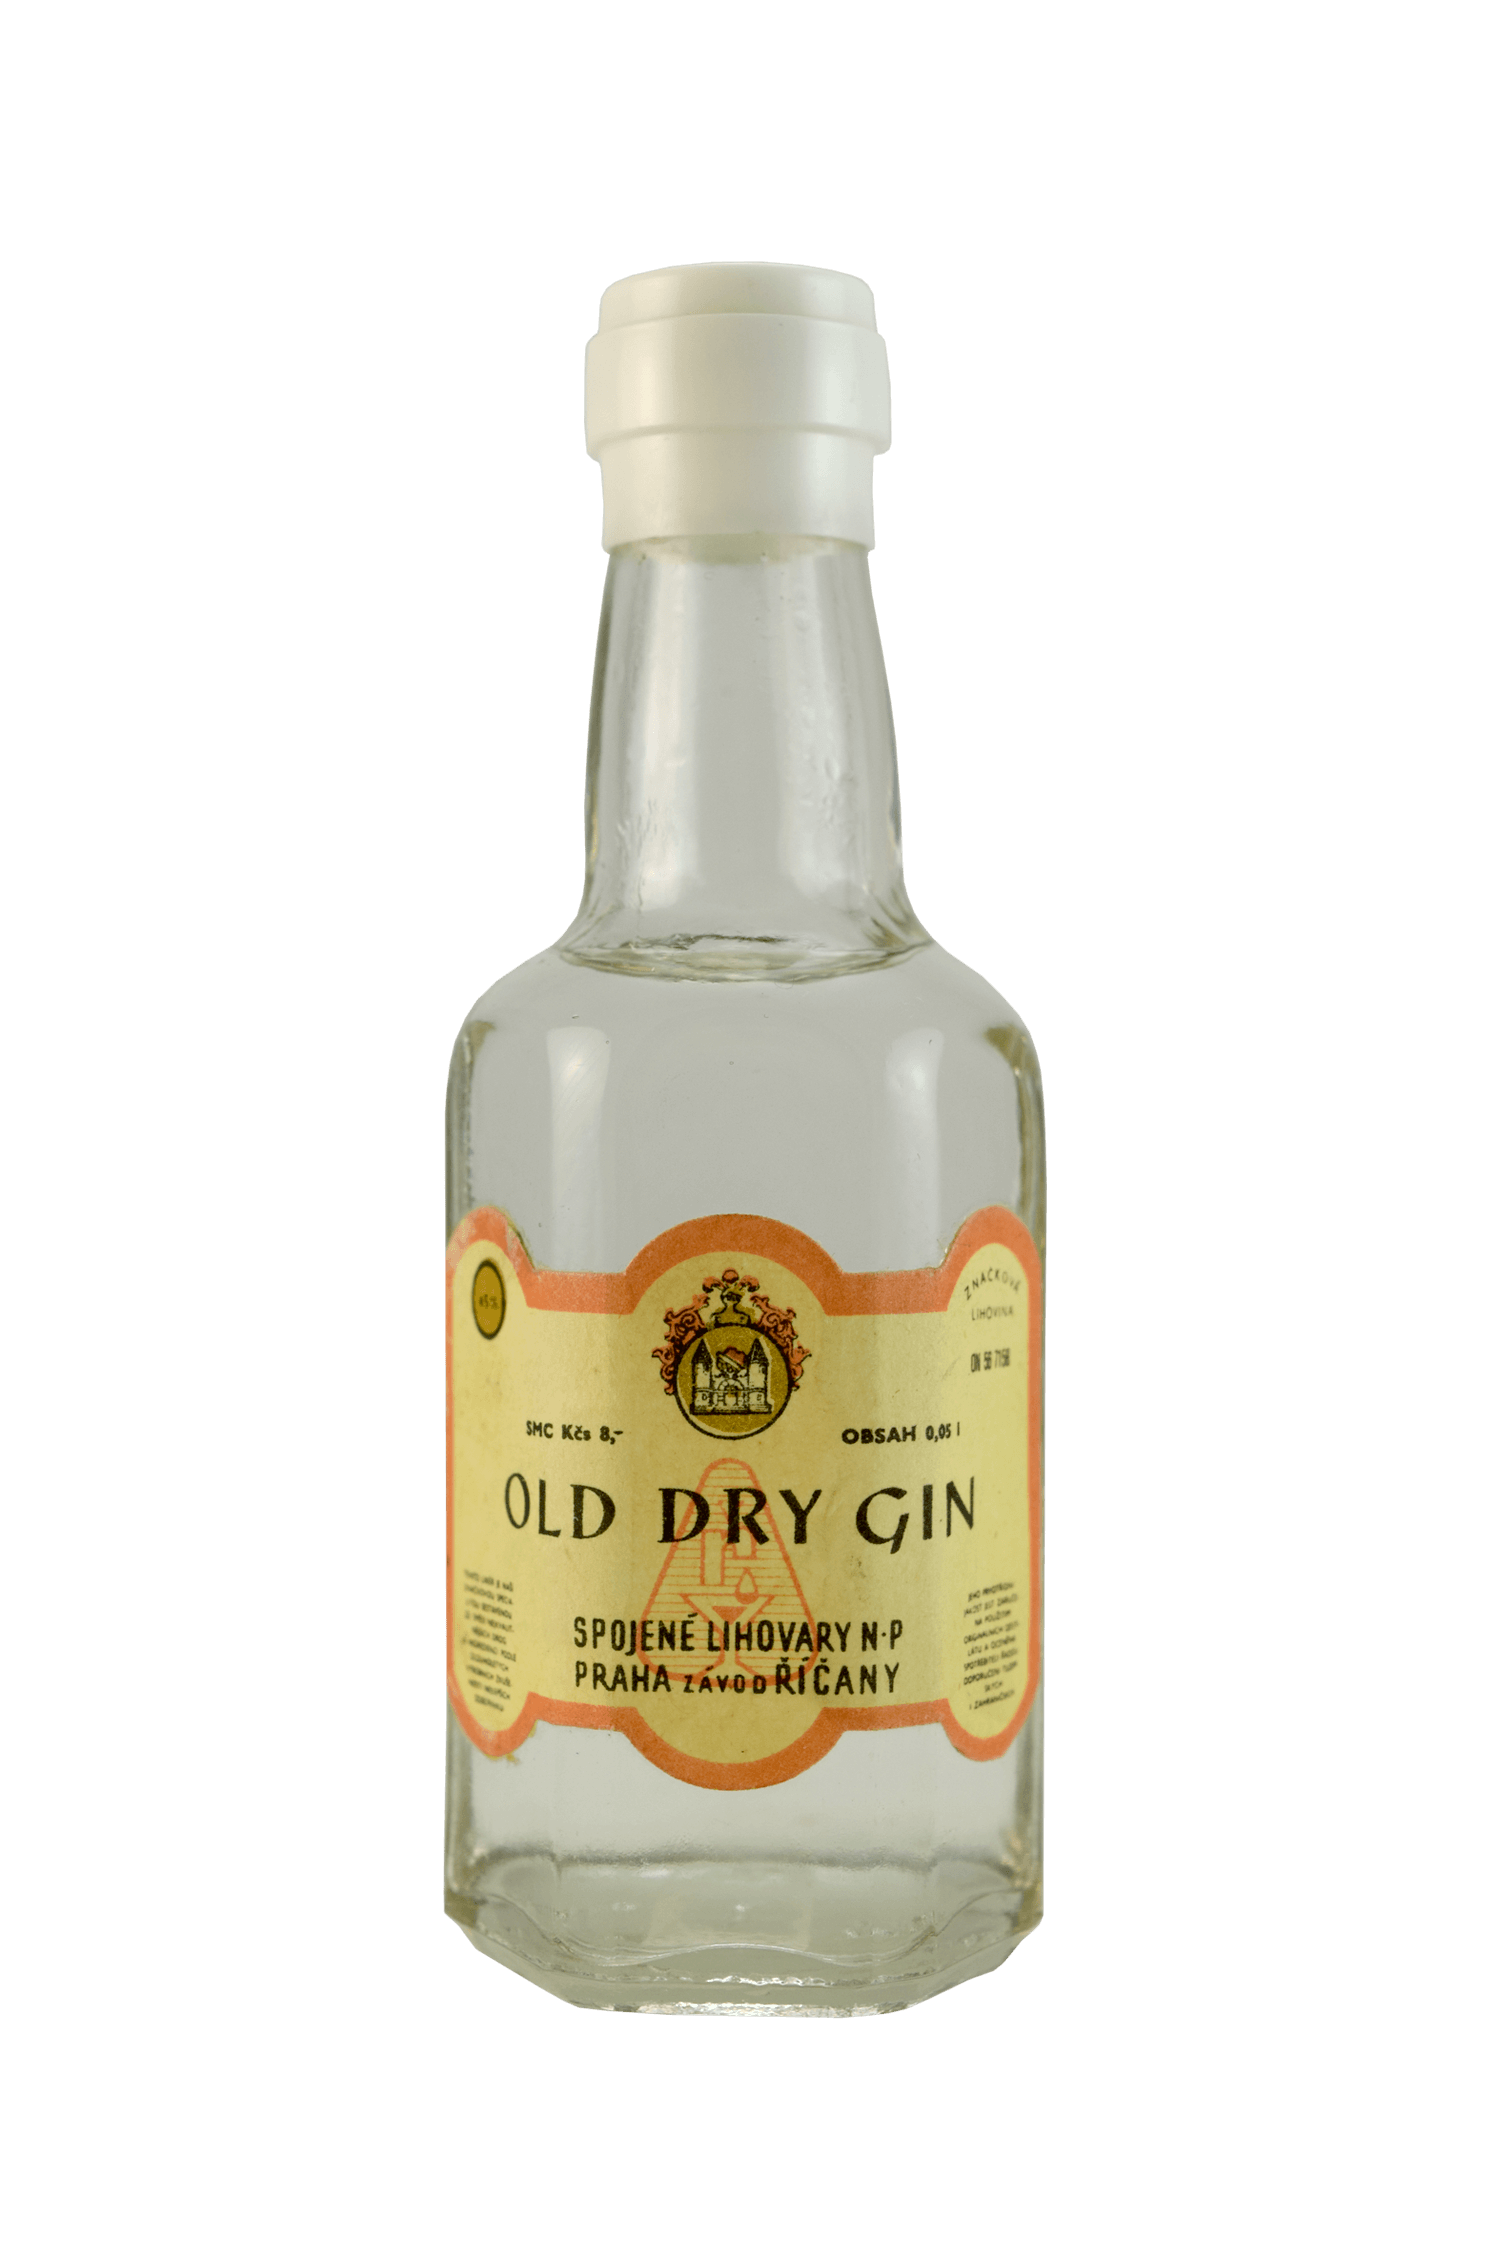 Old Dry Gin